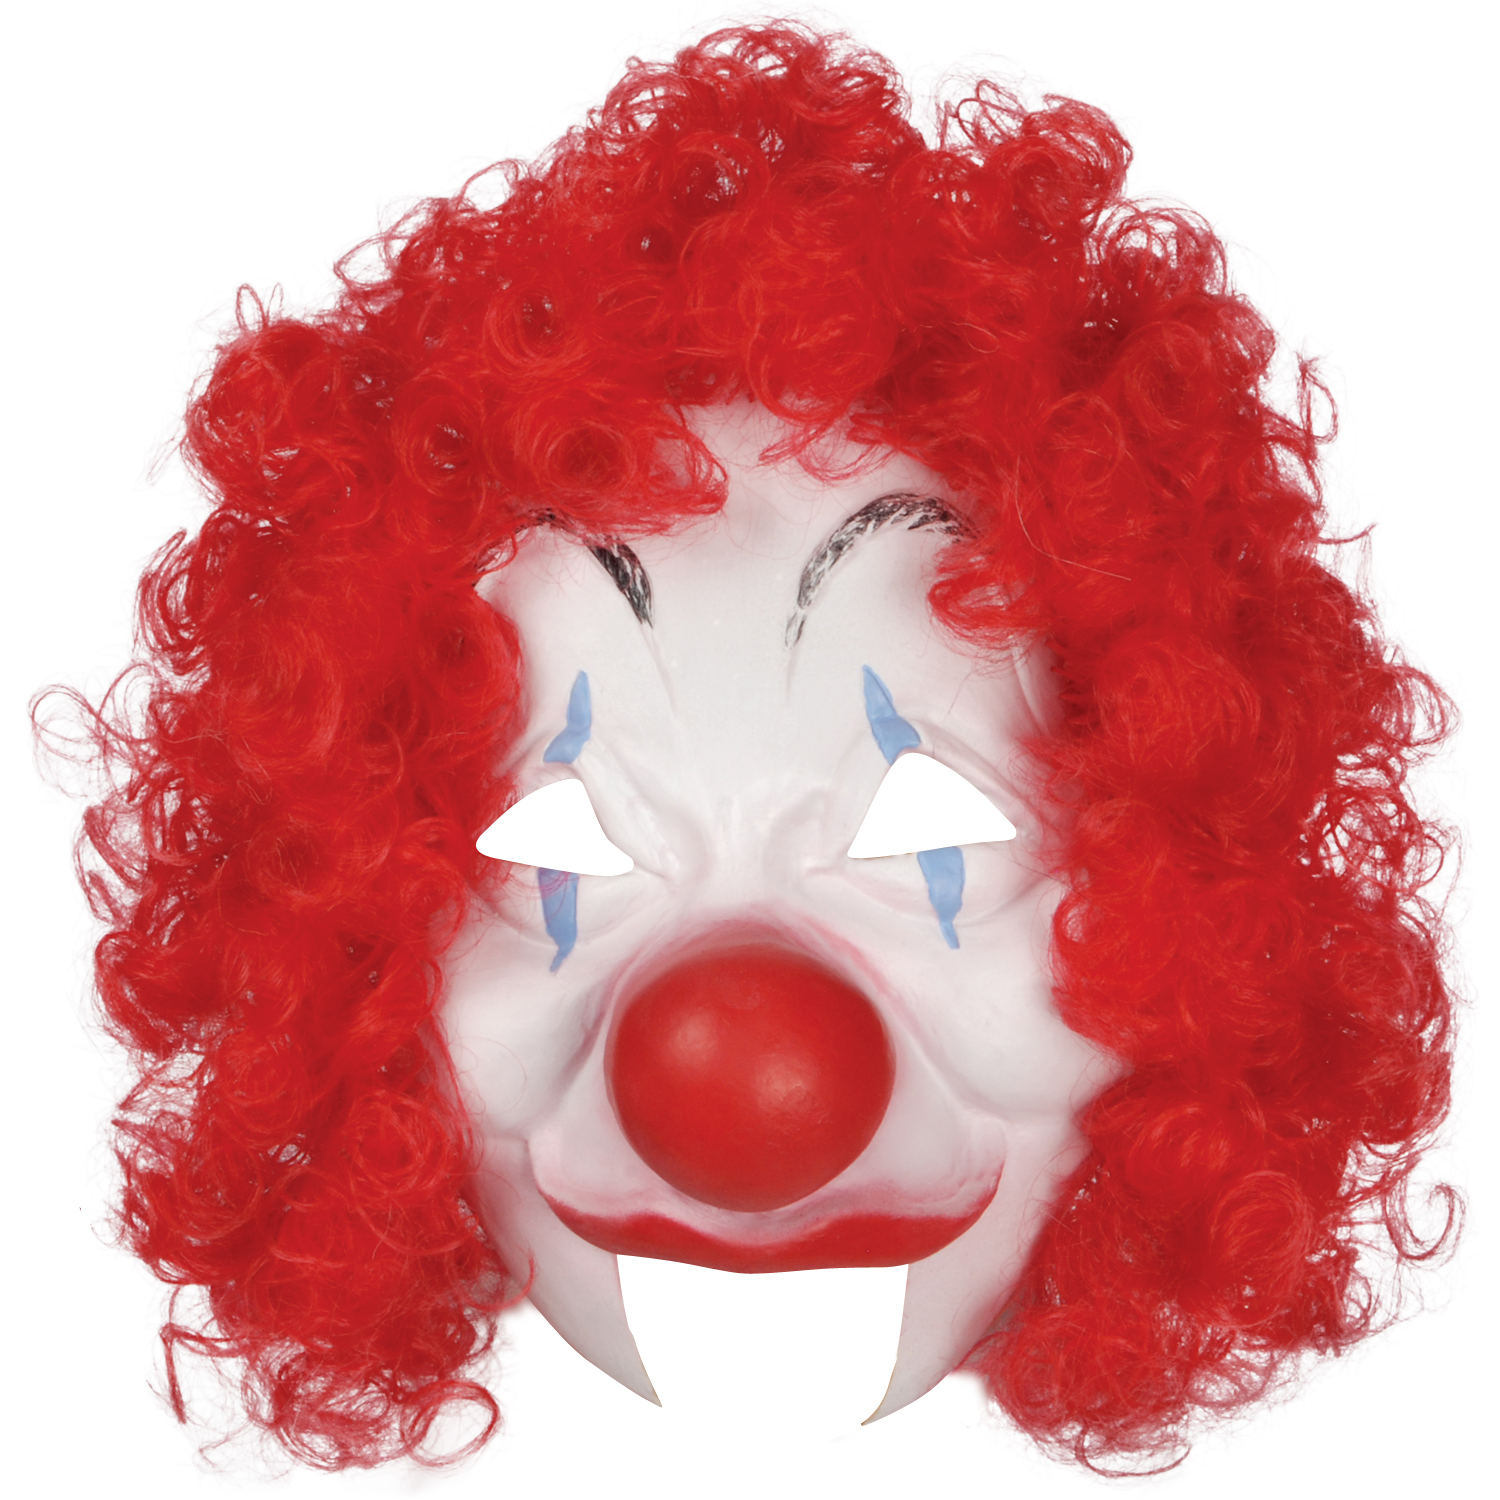 Loftus Men Halloween Clown Costume Face Mask, White Red, One Size